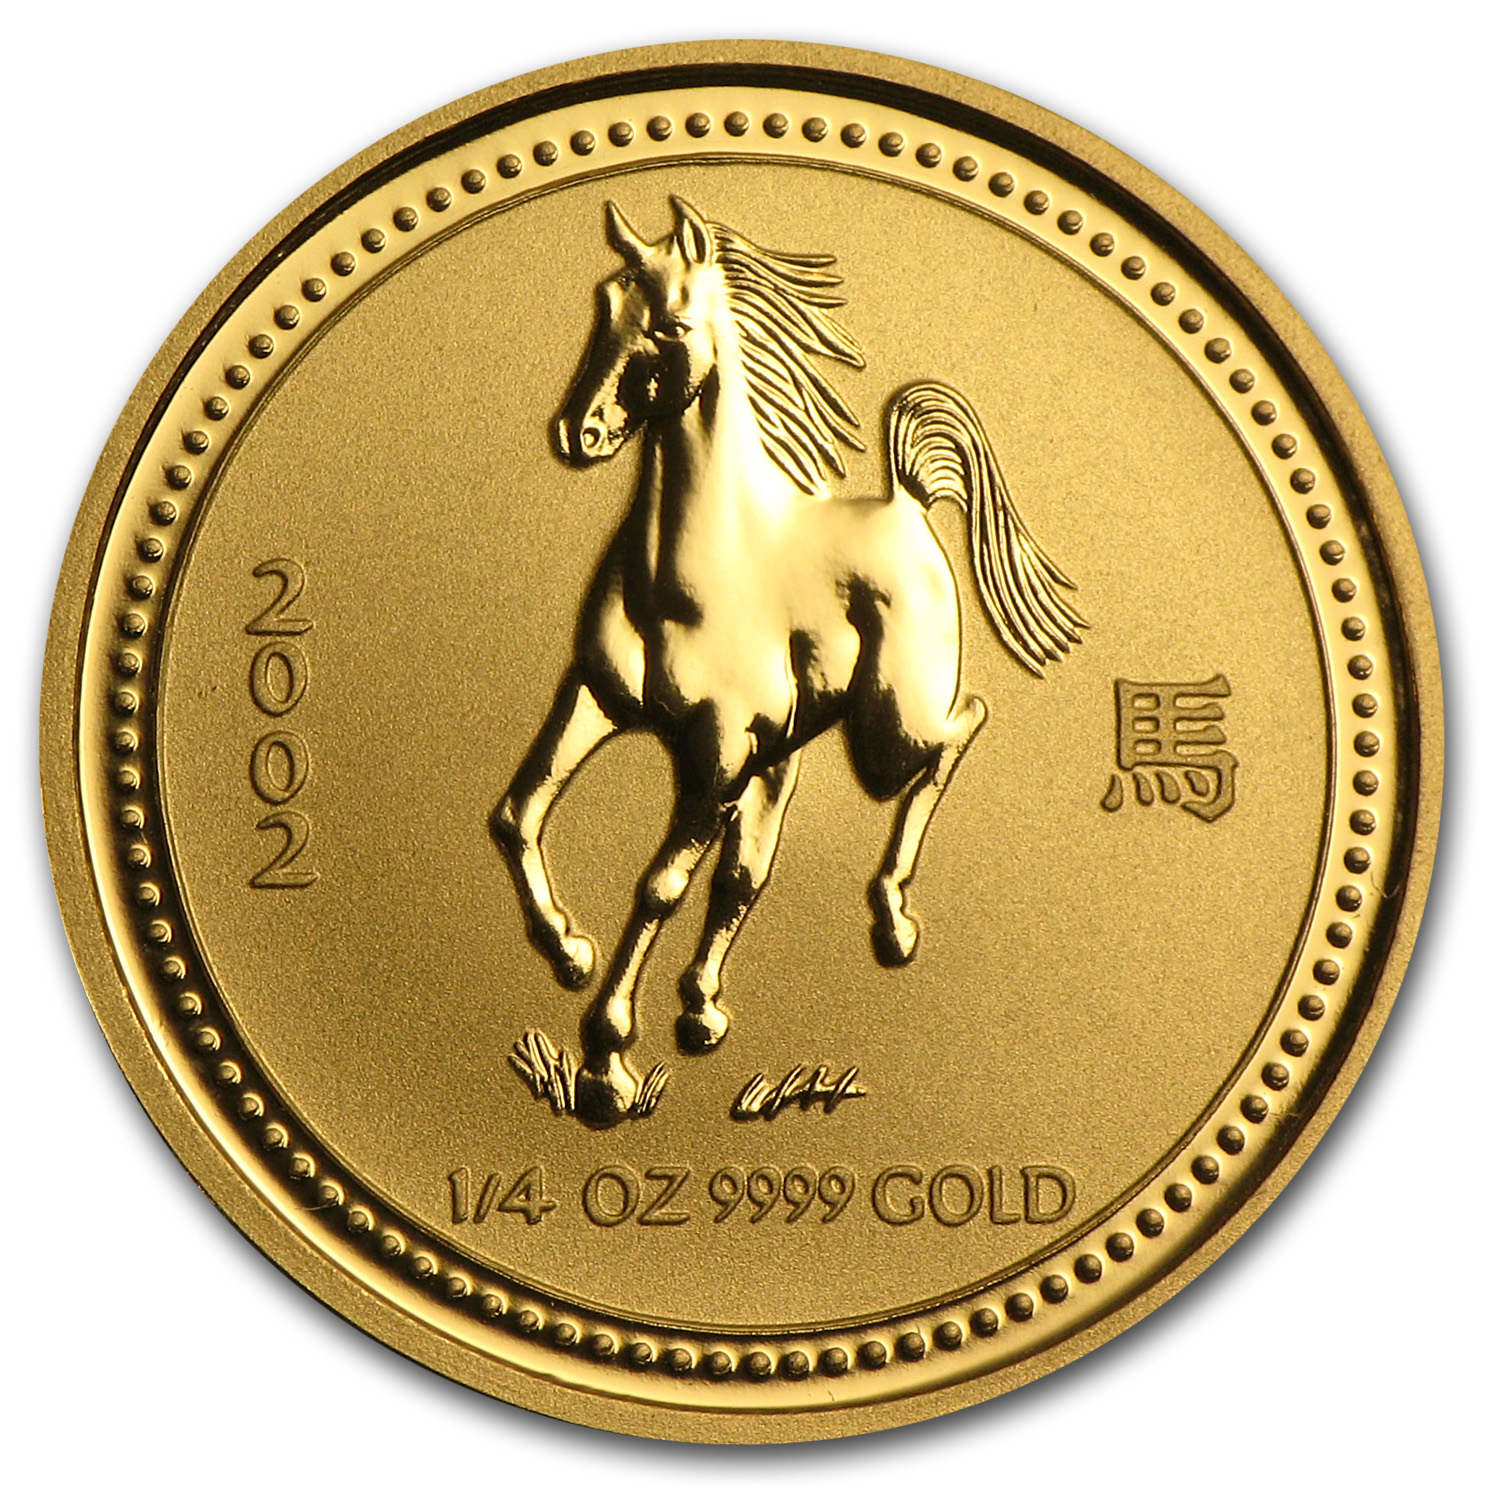 2002 1/4 oz Gold Year of the Horse Lunar Coin (Series I)